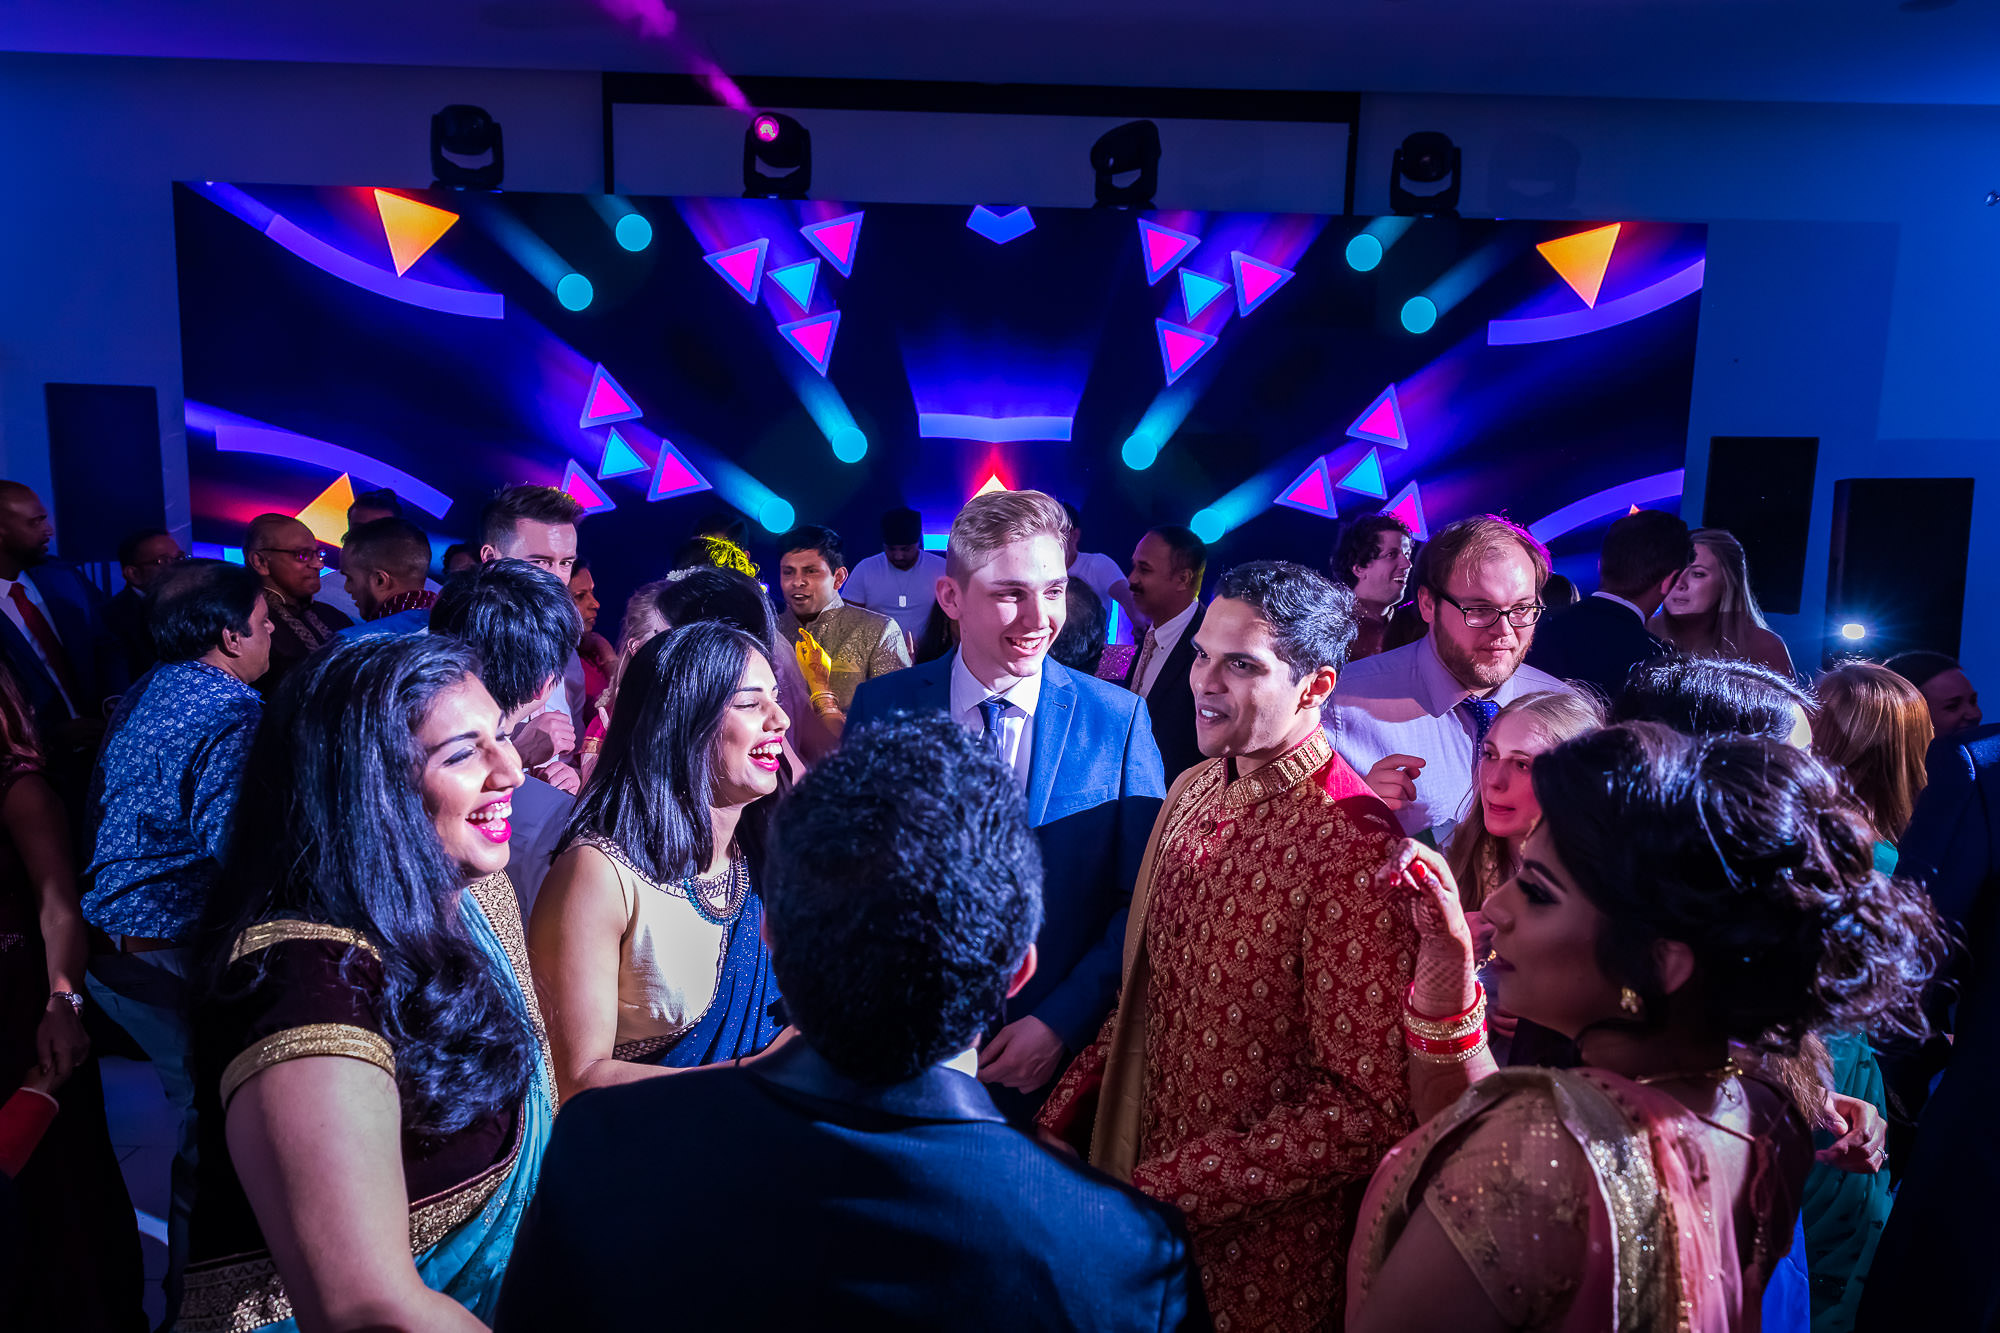 asian-wedding-hindu-tamil-photographer-heythorpe-oxford-0113.jpg